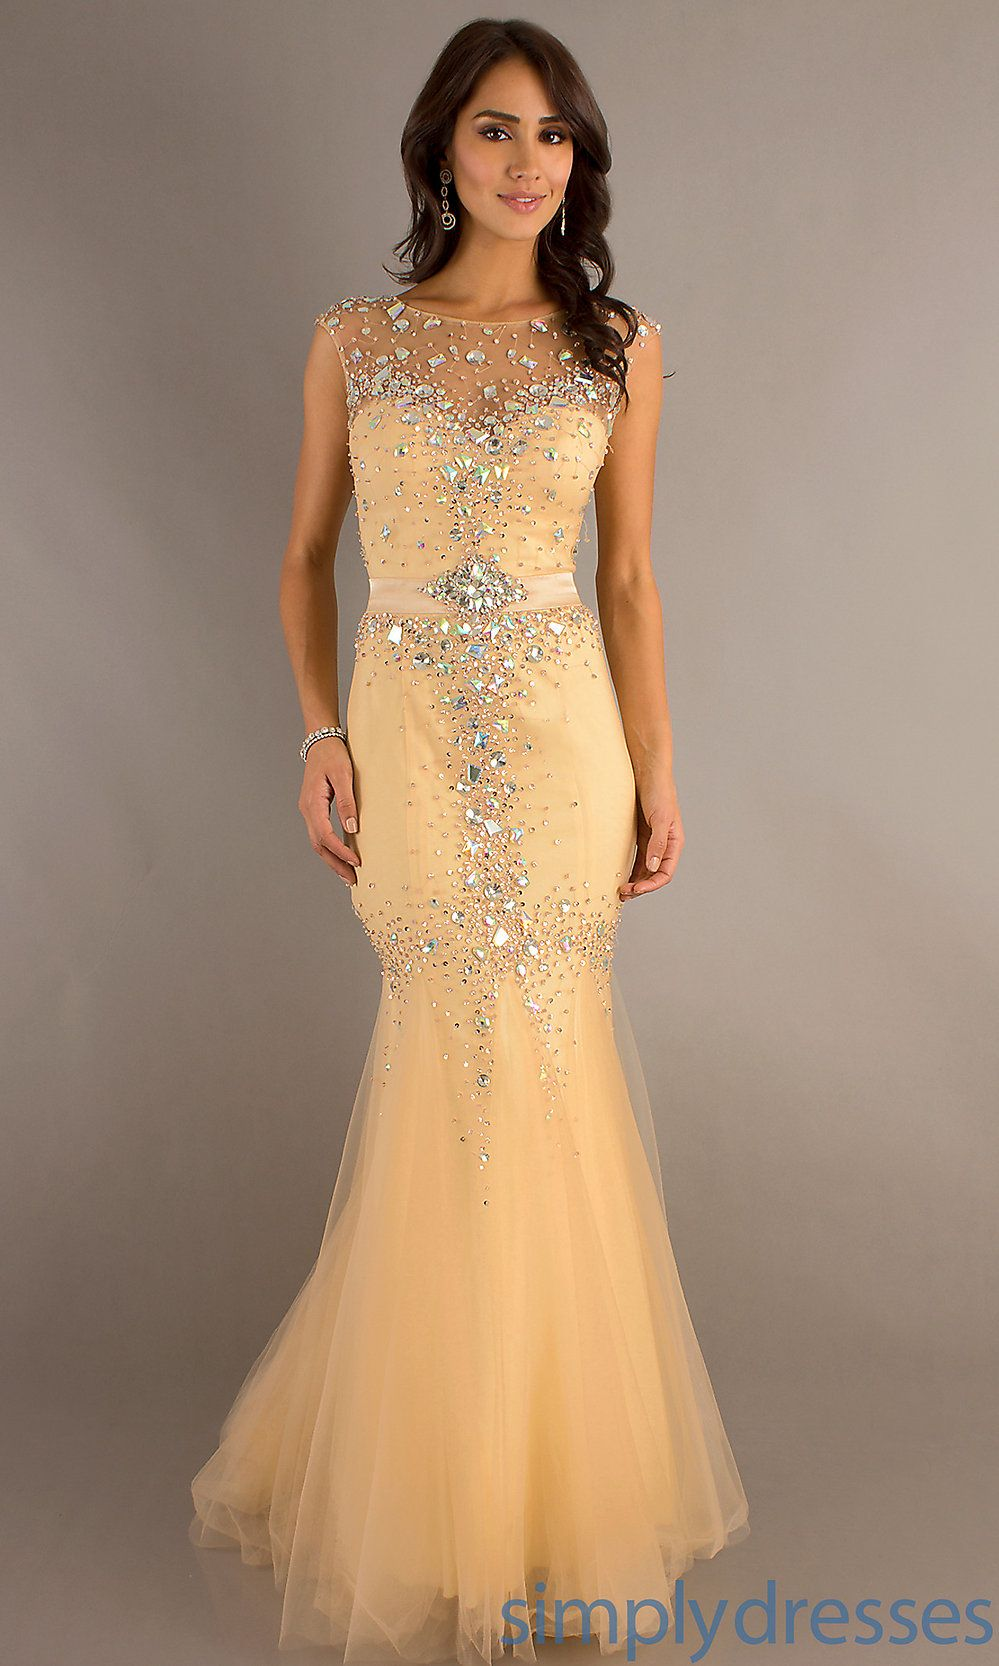 Sleeveless mermaid gown by dave and johnny legant long prom gown